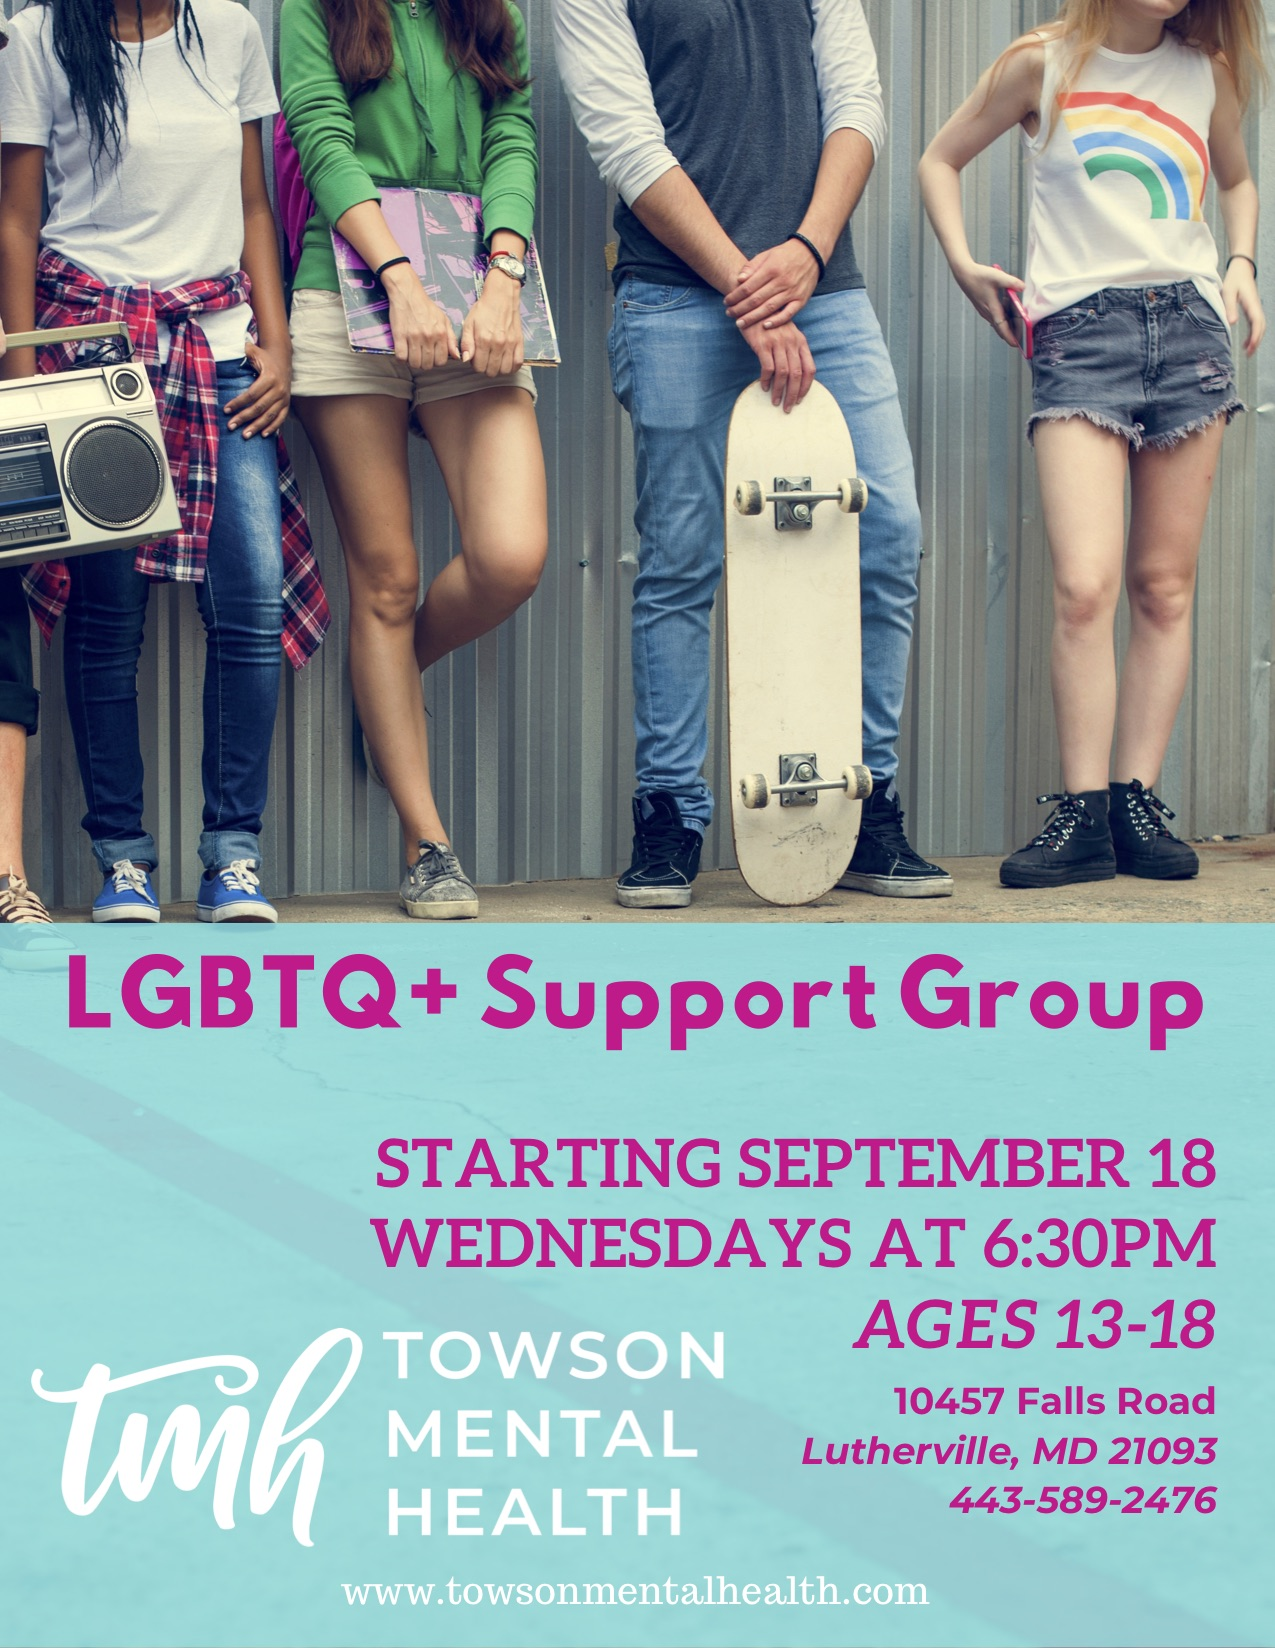 LGBTQ+ Support Group pic.jpg